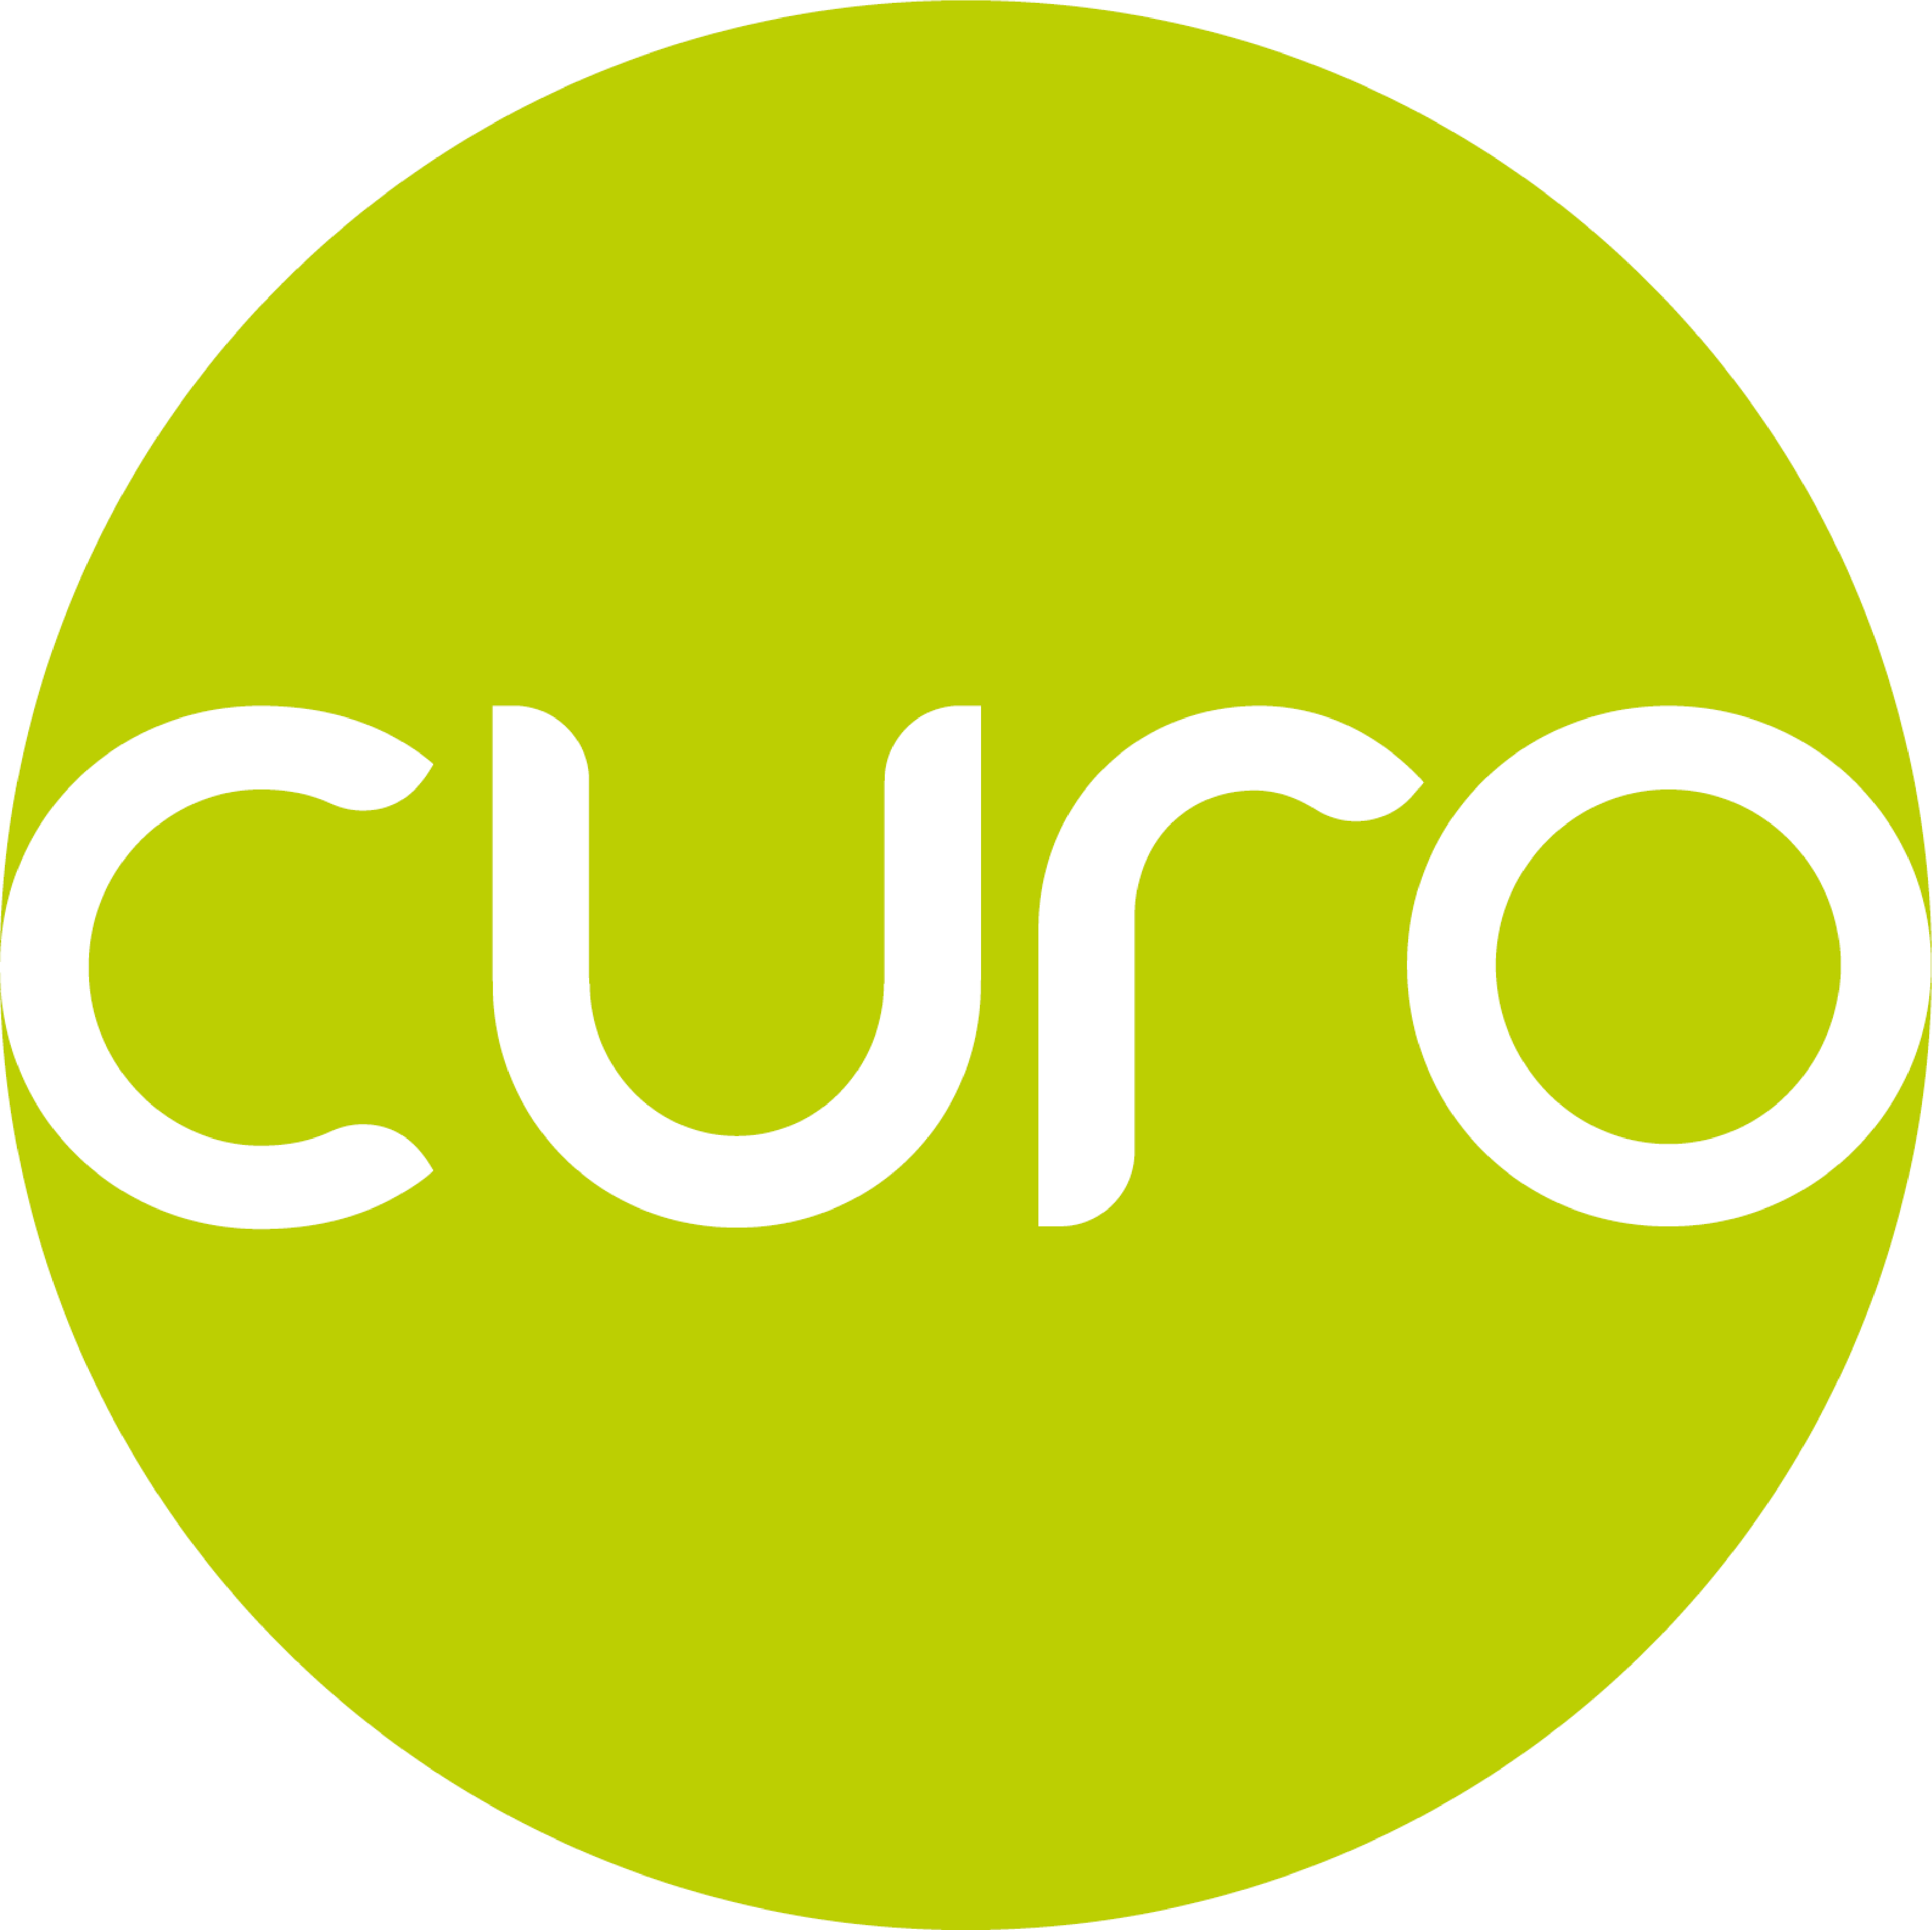 Curo – Embedding Equality Impact Assessments